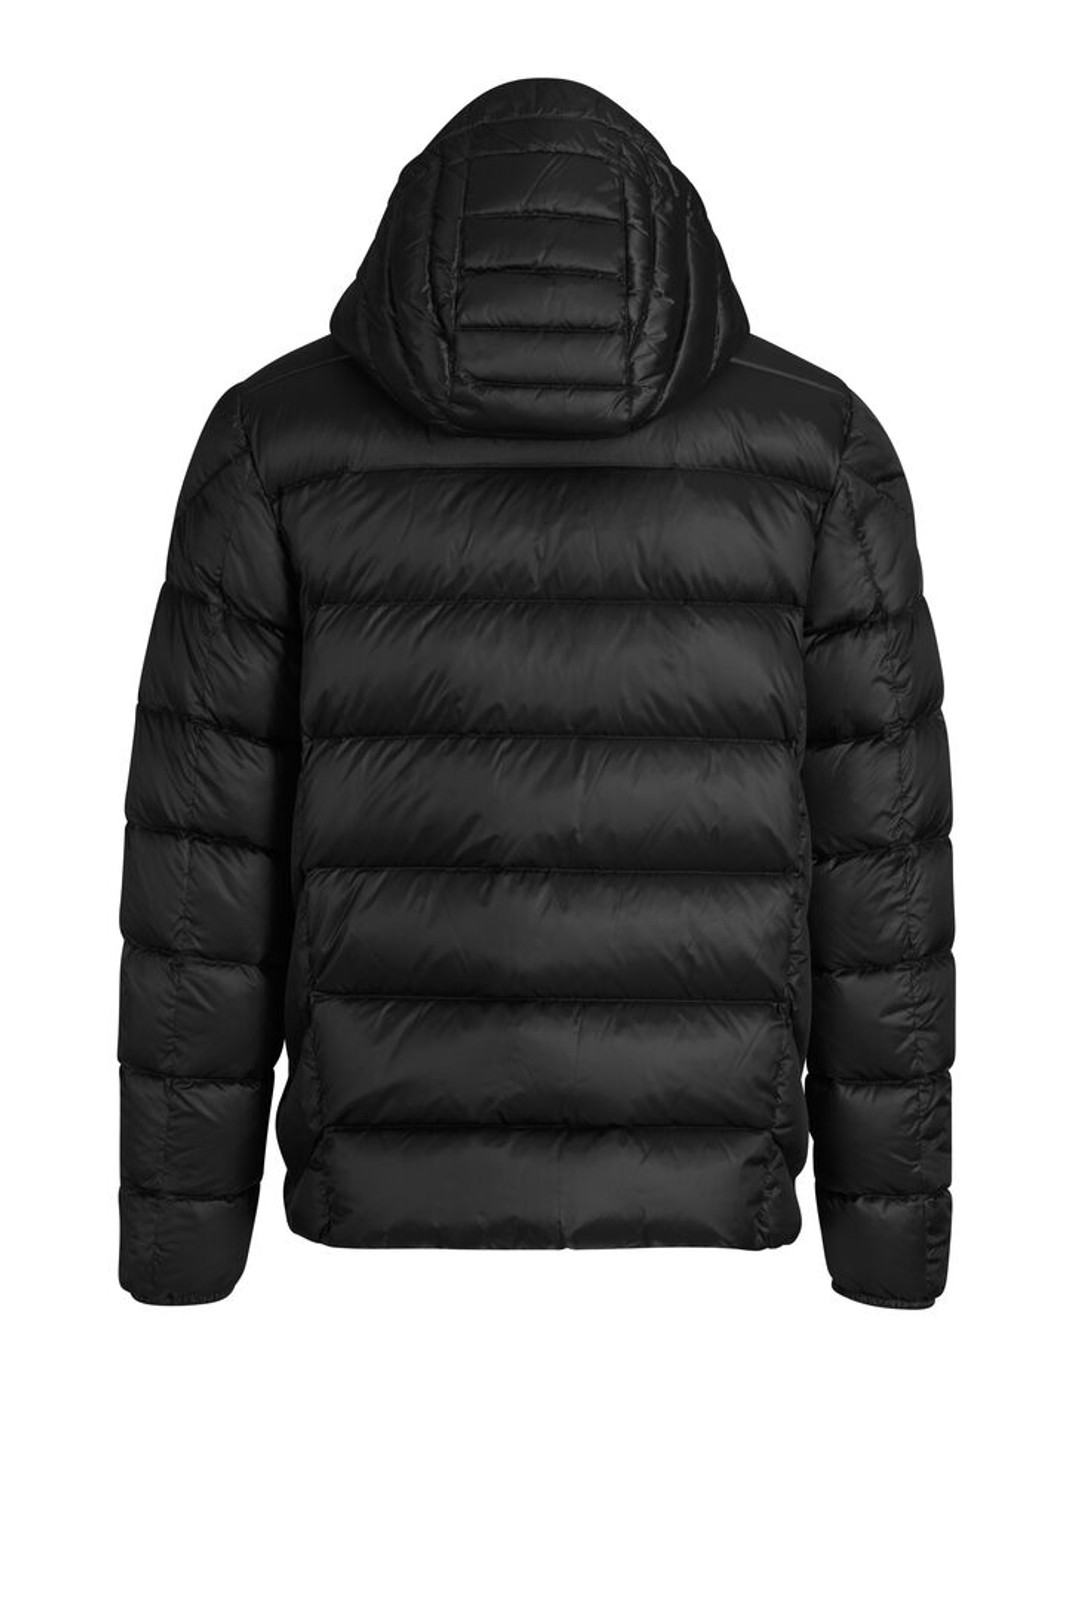 Parajumpers Greg Puffer Jacket, Men's, Pencil (PMJCKSX04-710) back